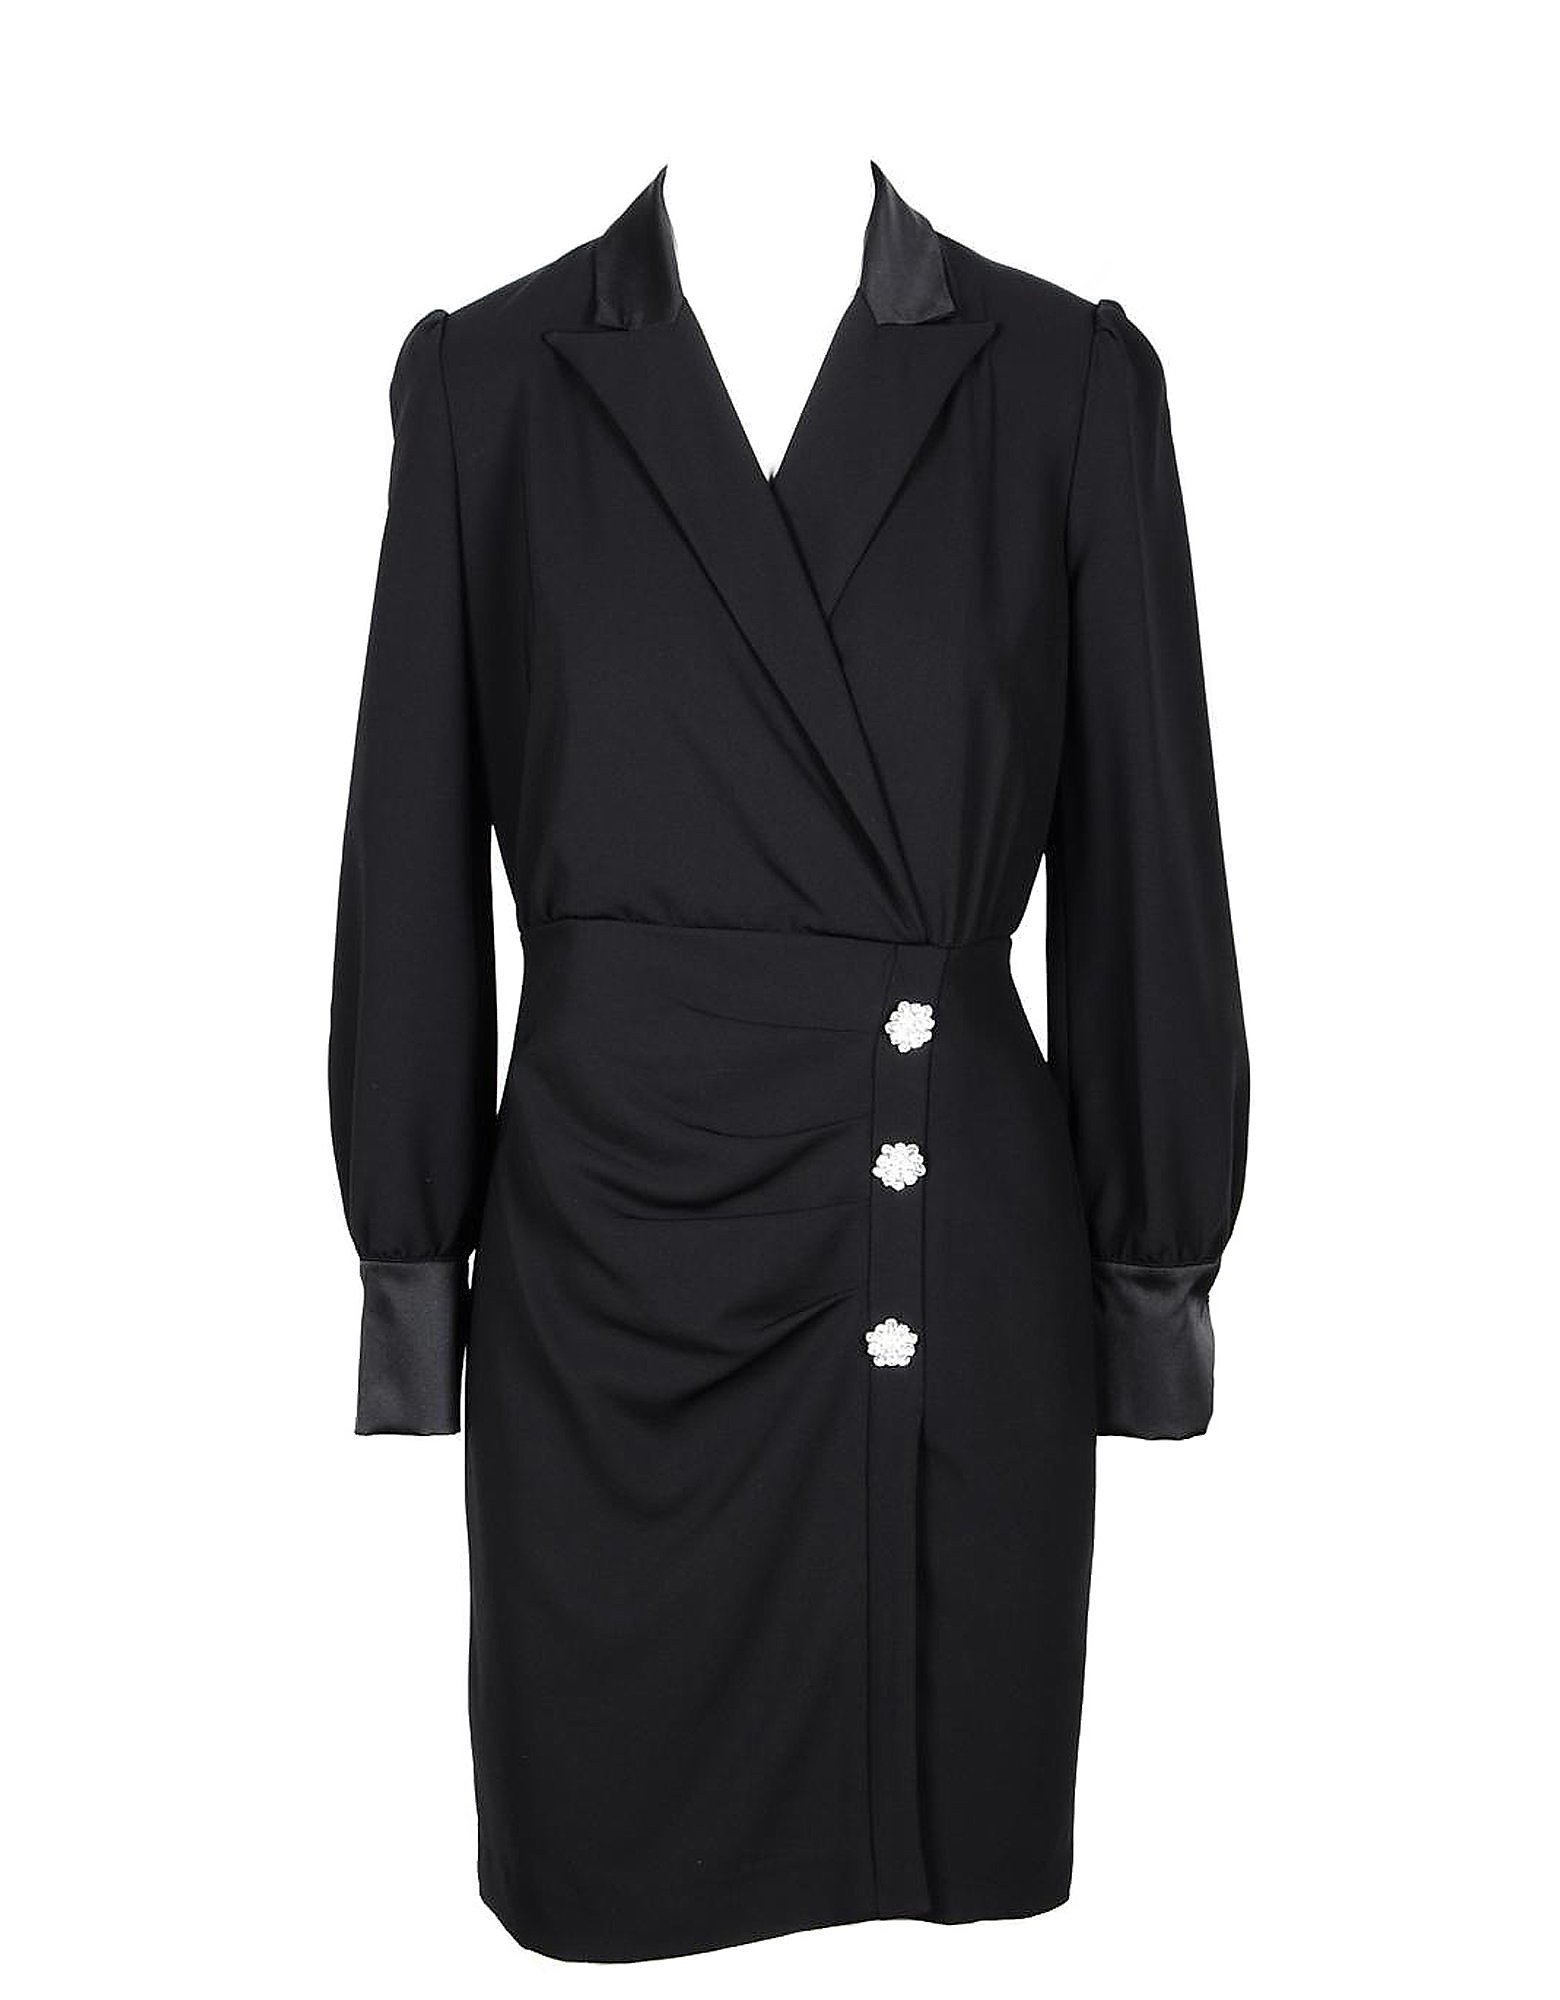 Annarita N Designer Dresses & Jumpsuits, Black Women's Wrap Dress